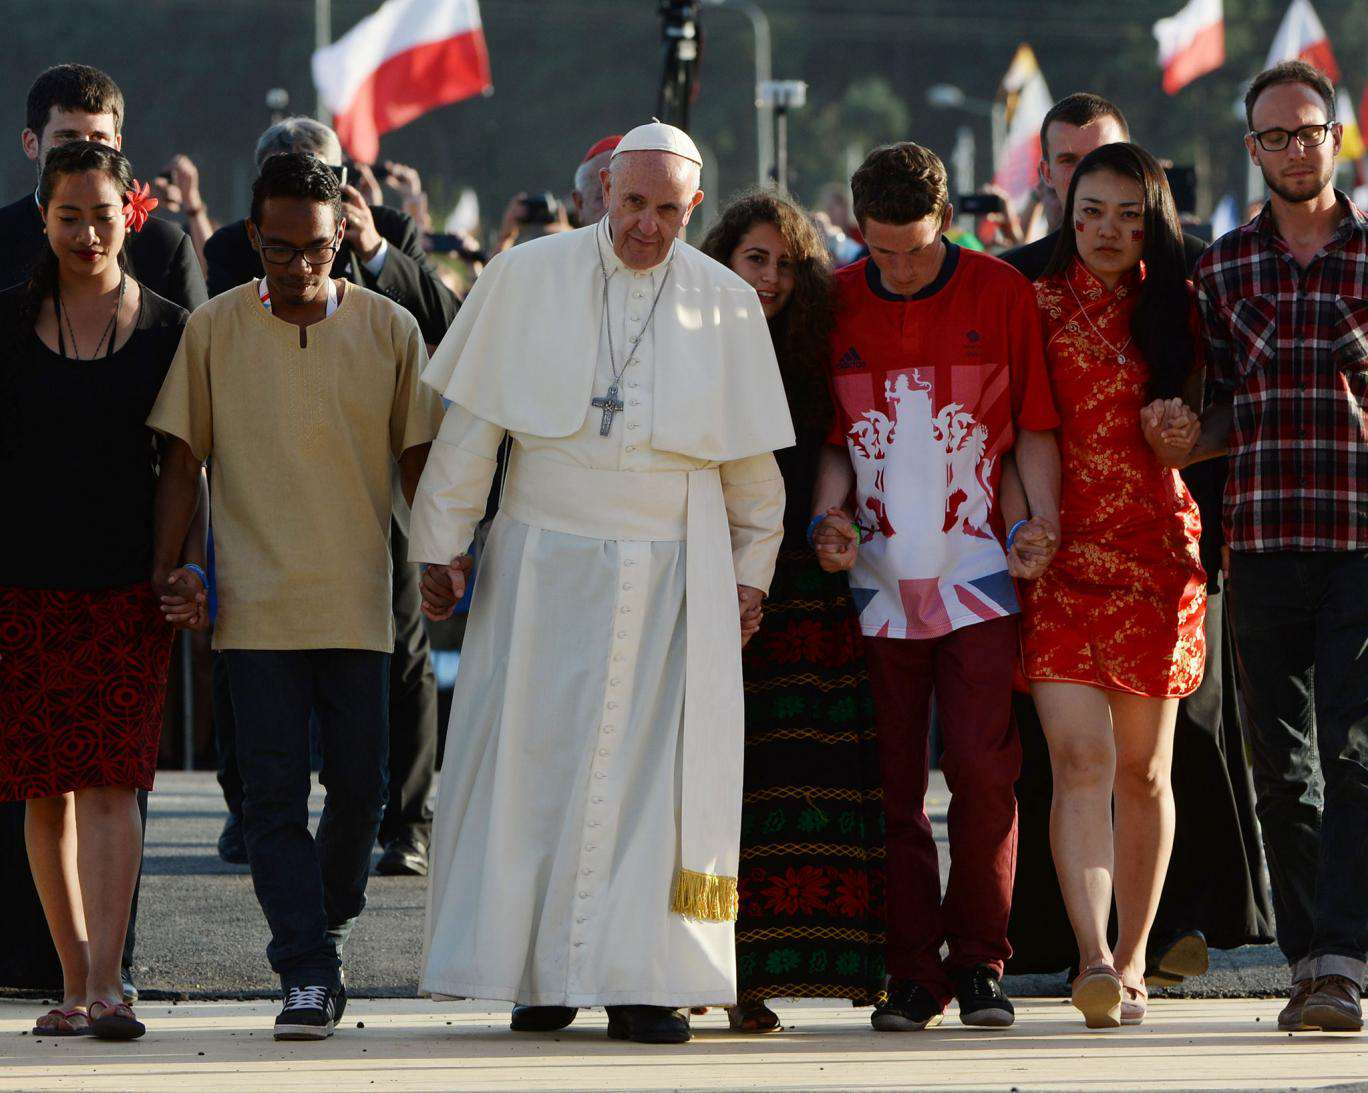 pope francis poland The Pope Wants You To Stop Playing Videogames